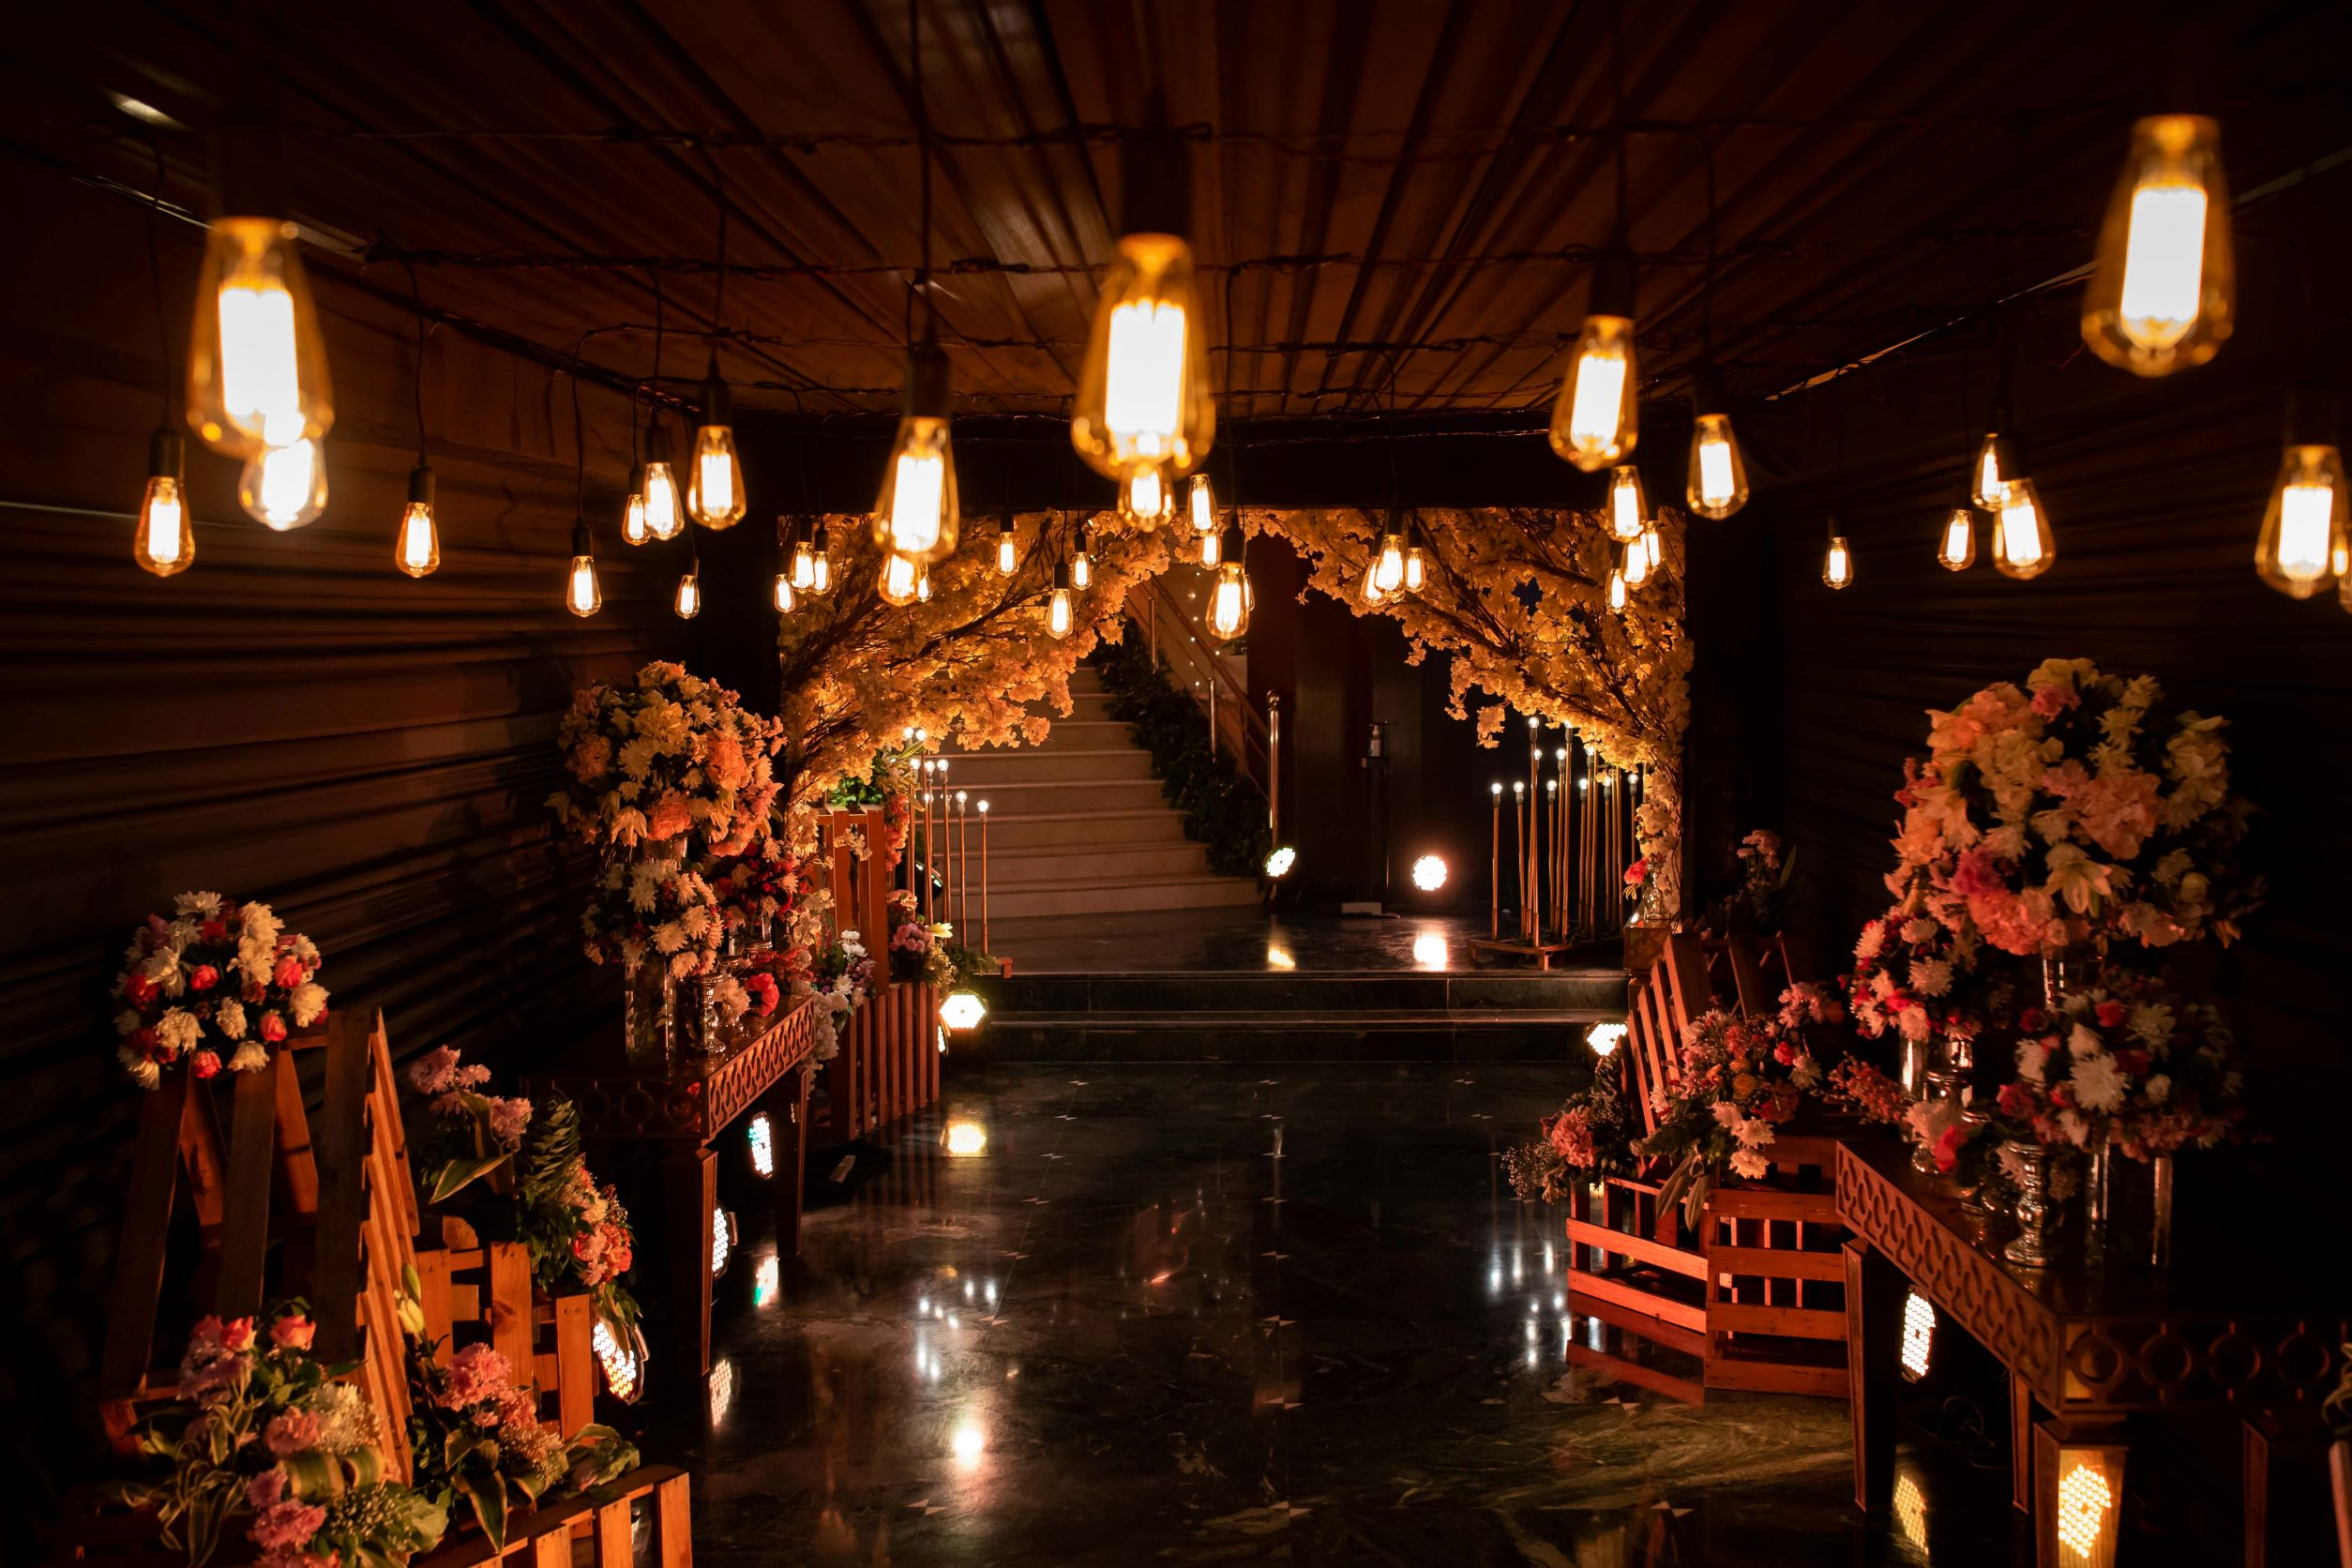 entrance decorated with lights and flowers